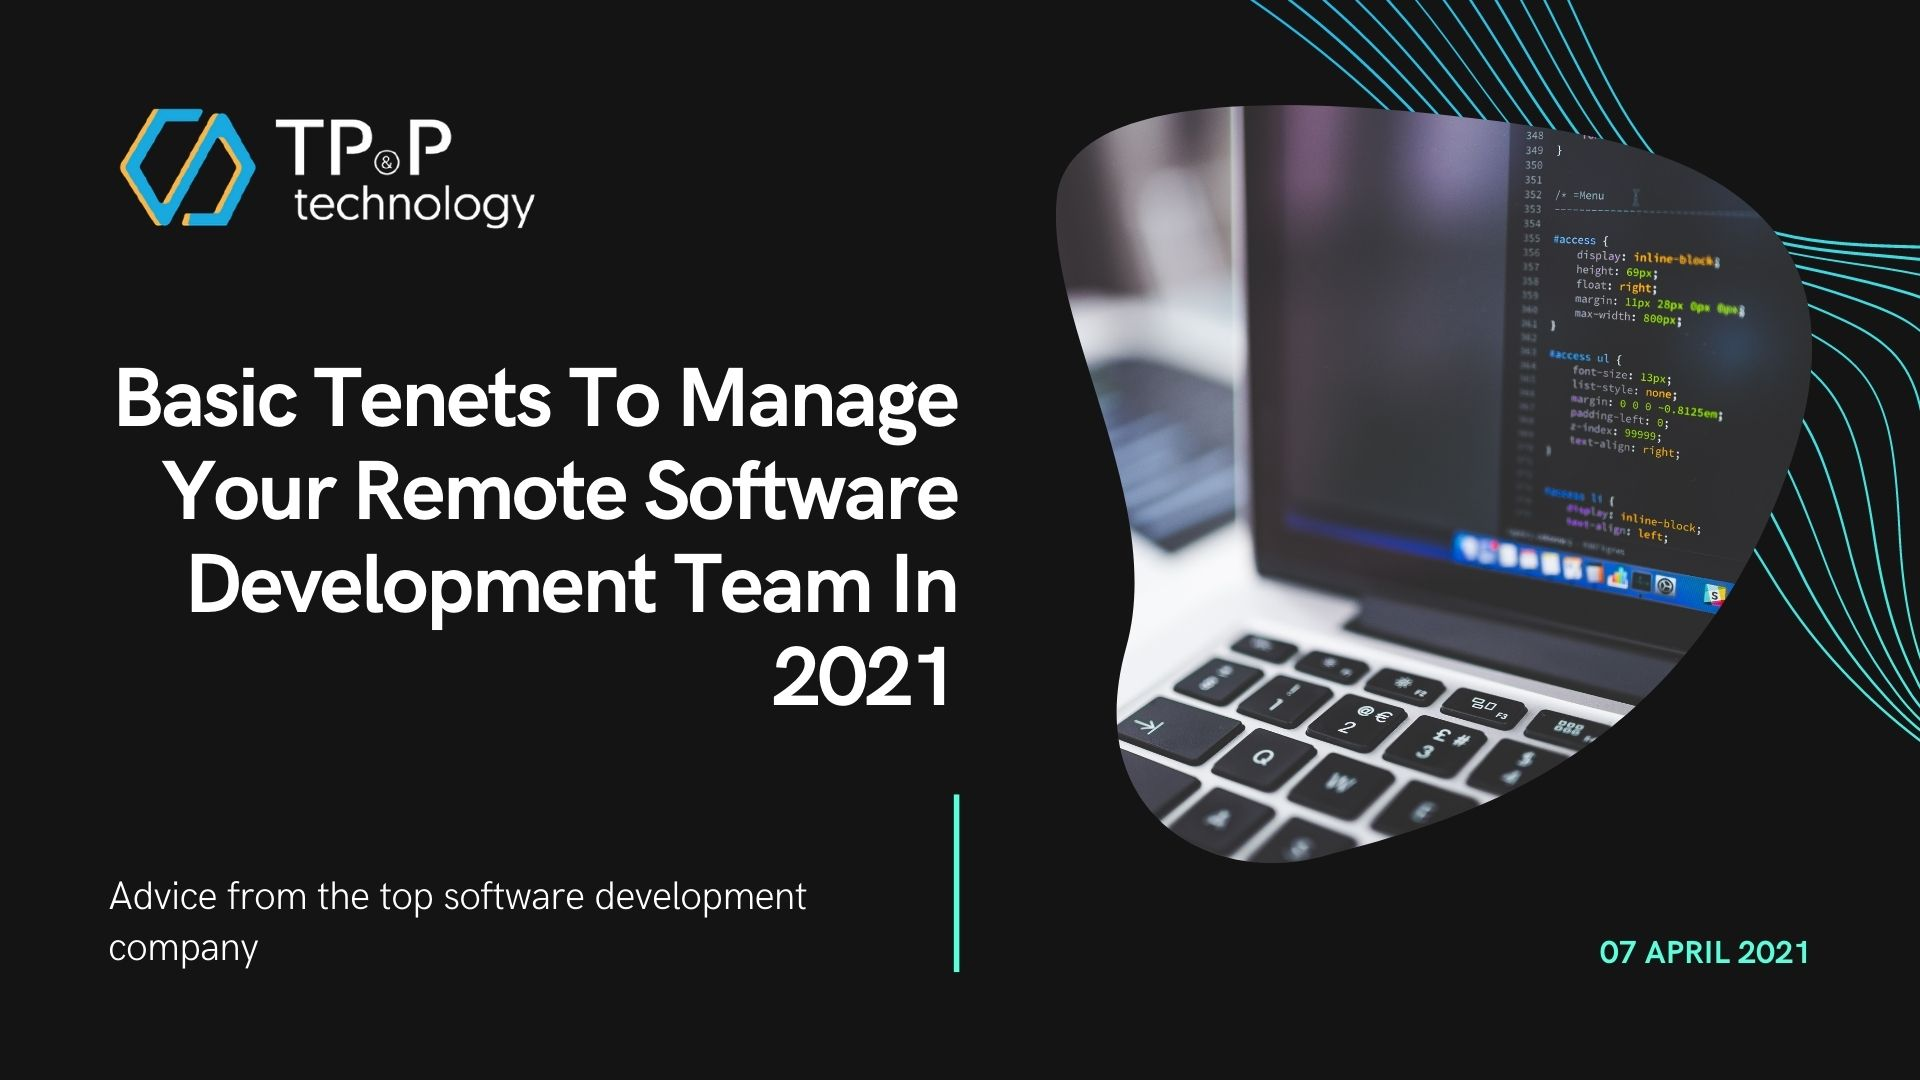 Basic Tenets To Manage Your Remote Software Development Team In 2021